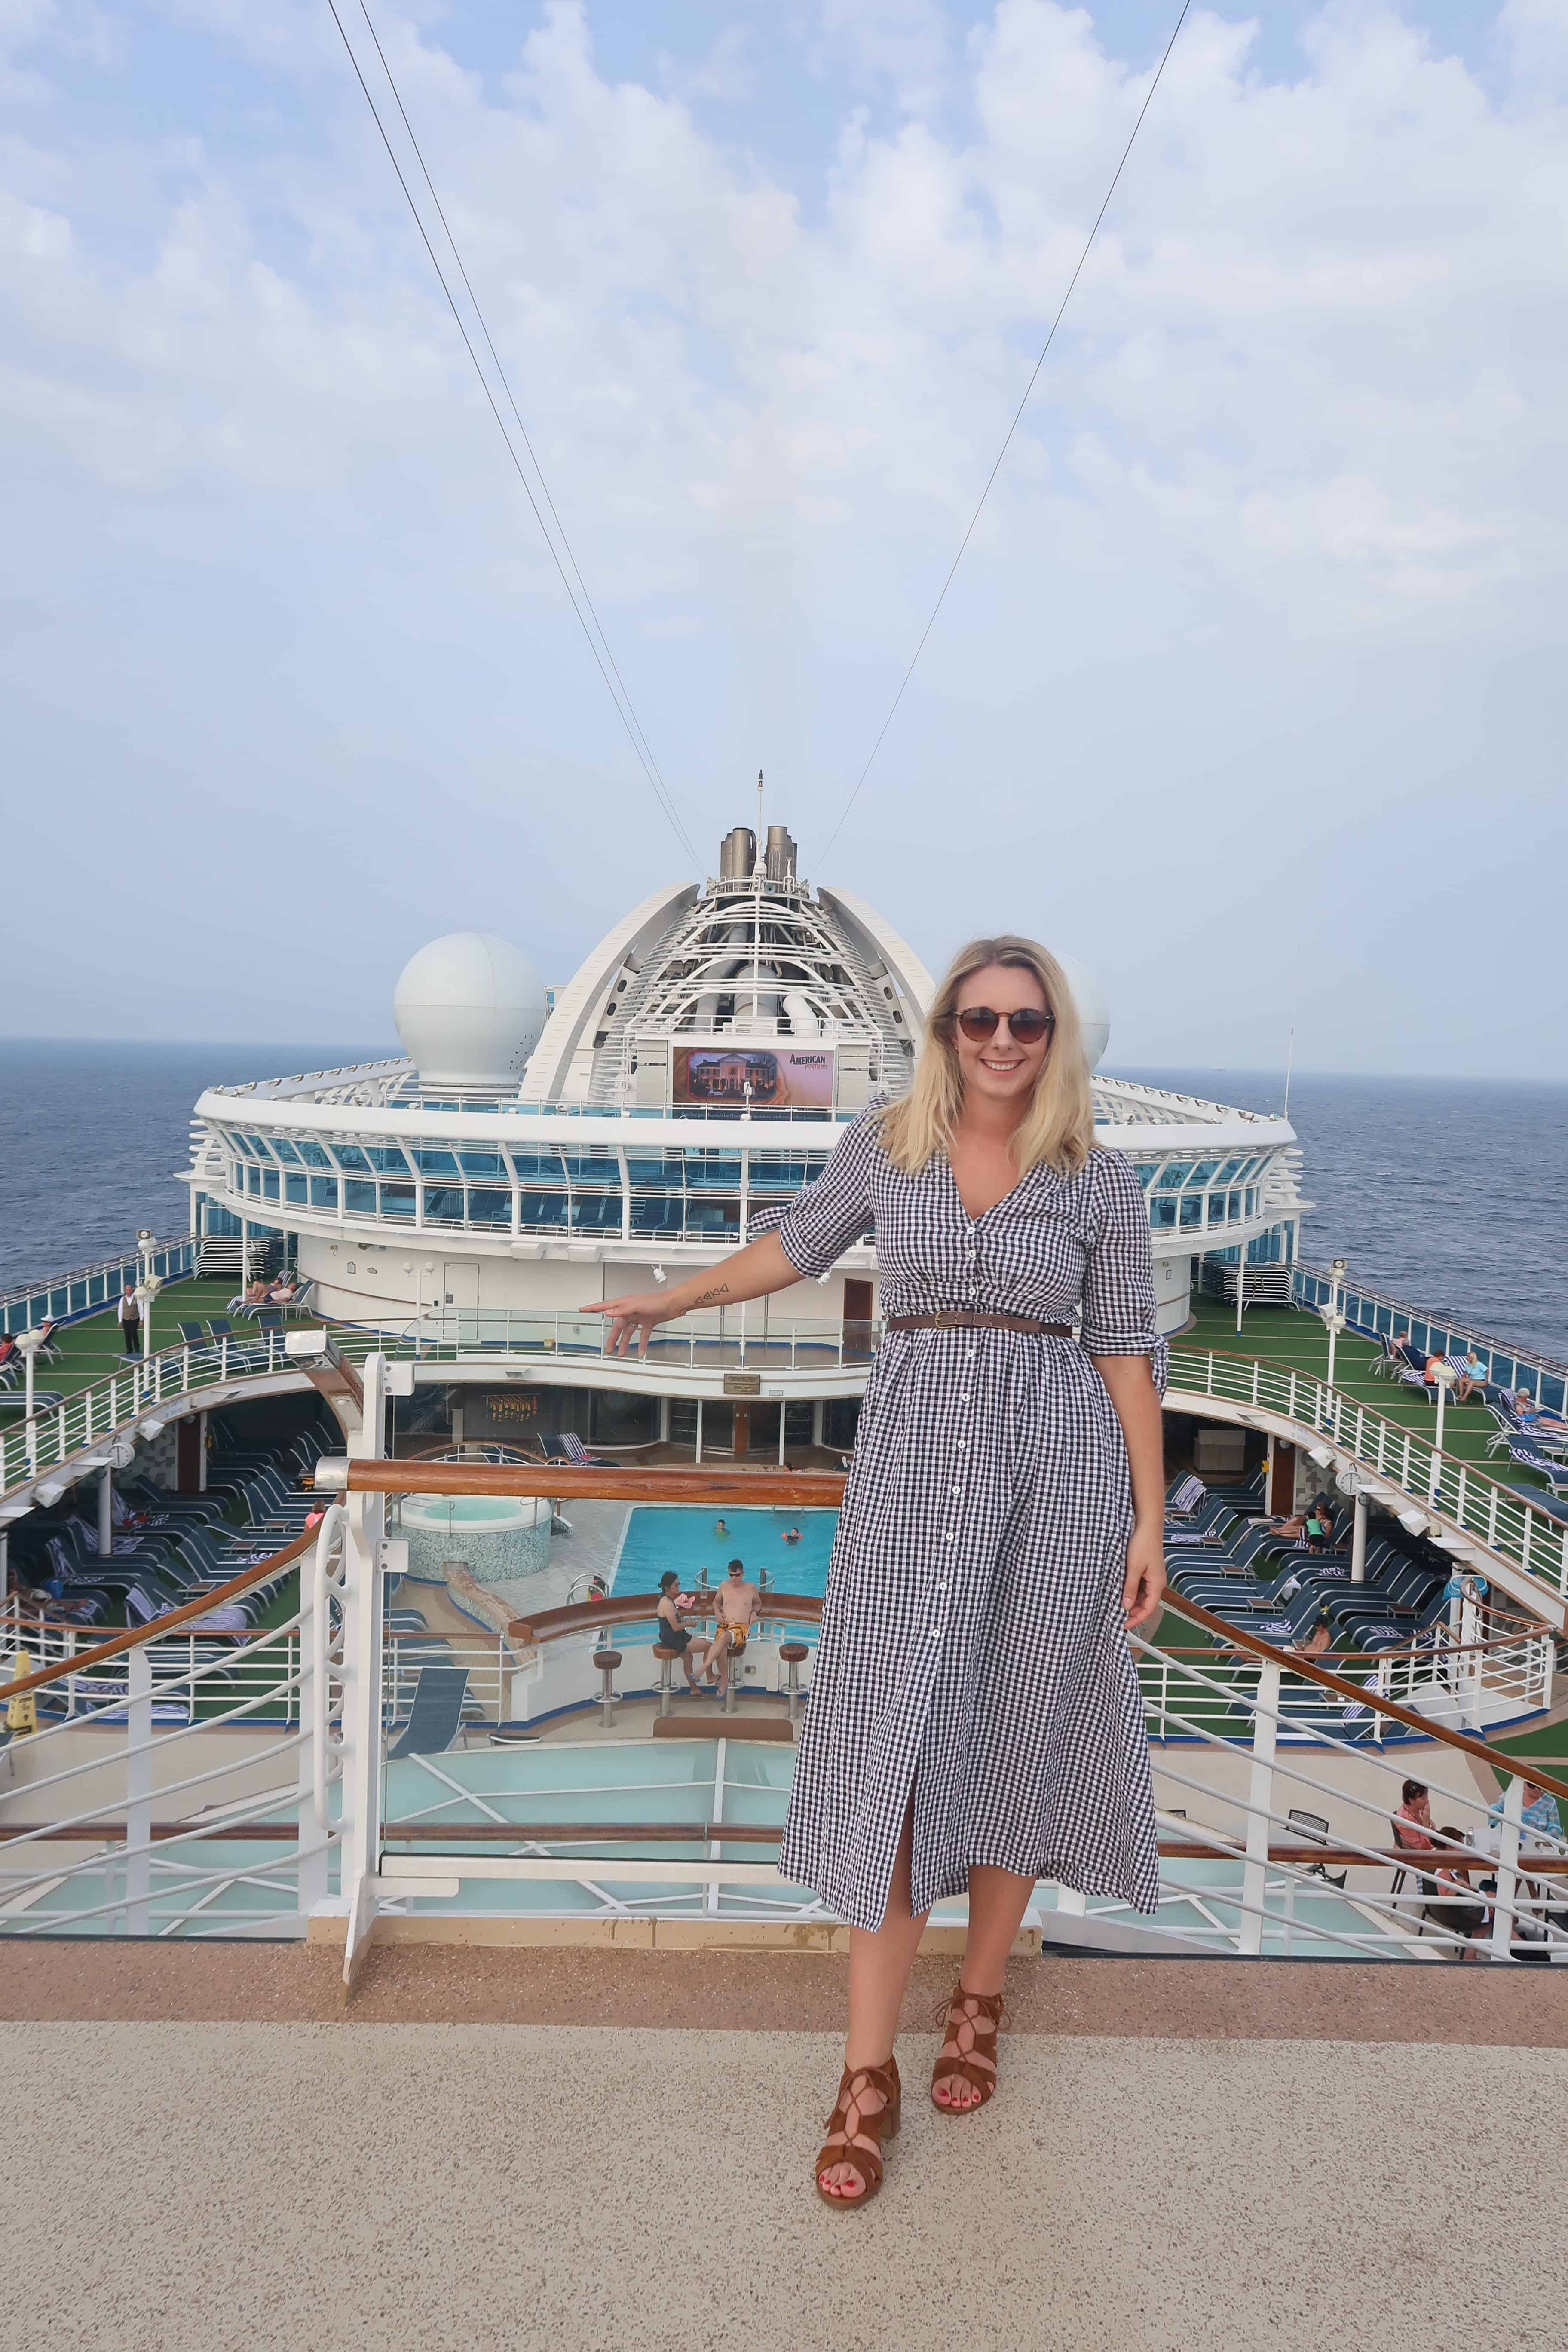 Fashion Cruise Outfit Packing